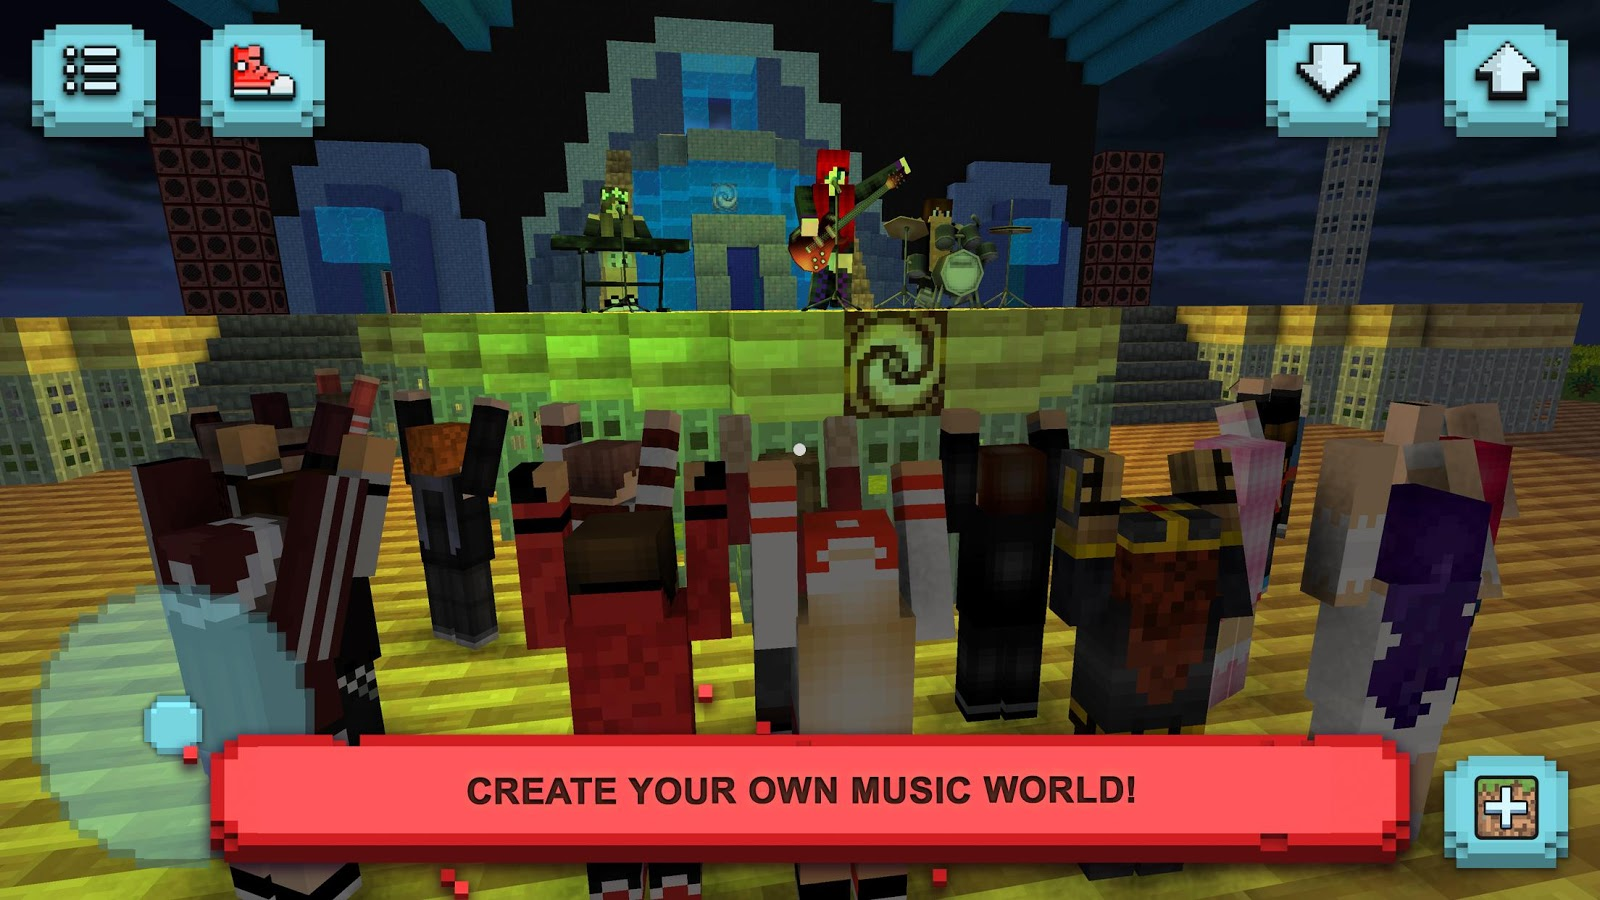 Rock star craft music legend android apps on google play for Crafting and building app store